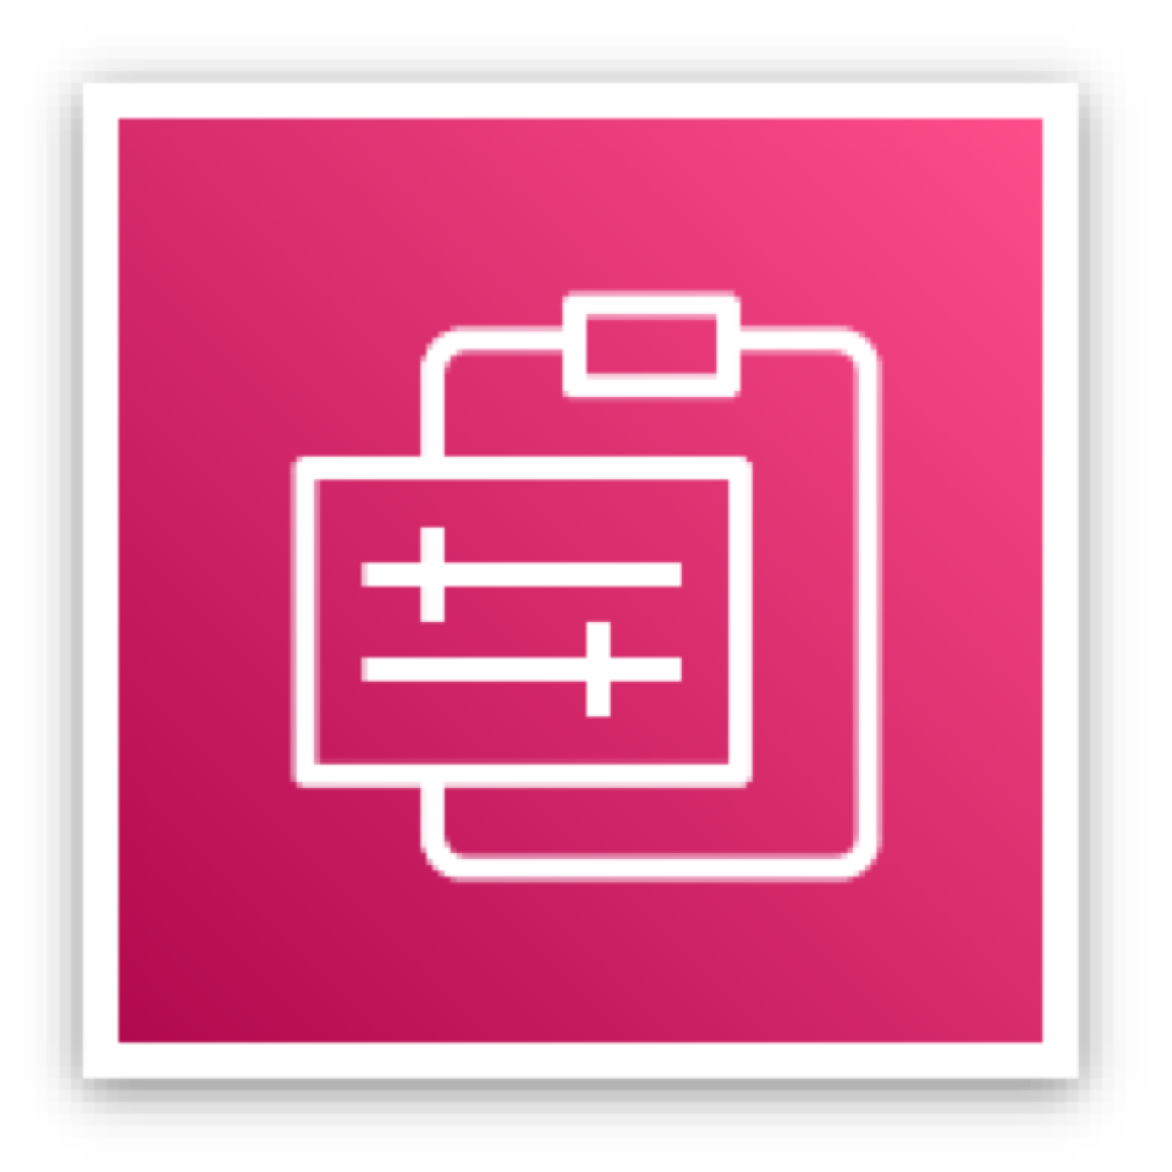 Management and Governance icon depicting a clipboard and slide switches against a pink background